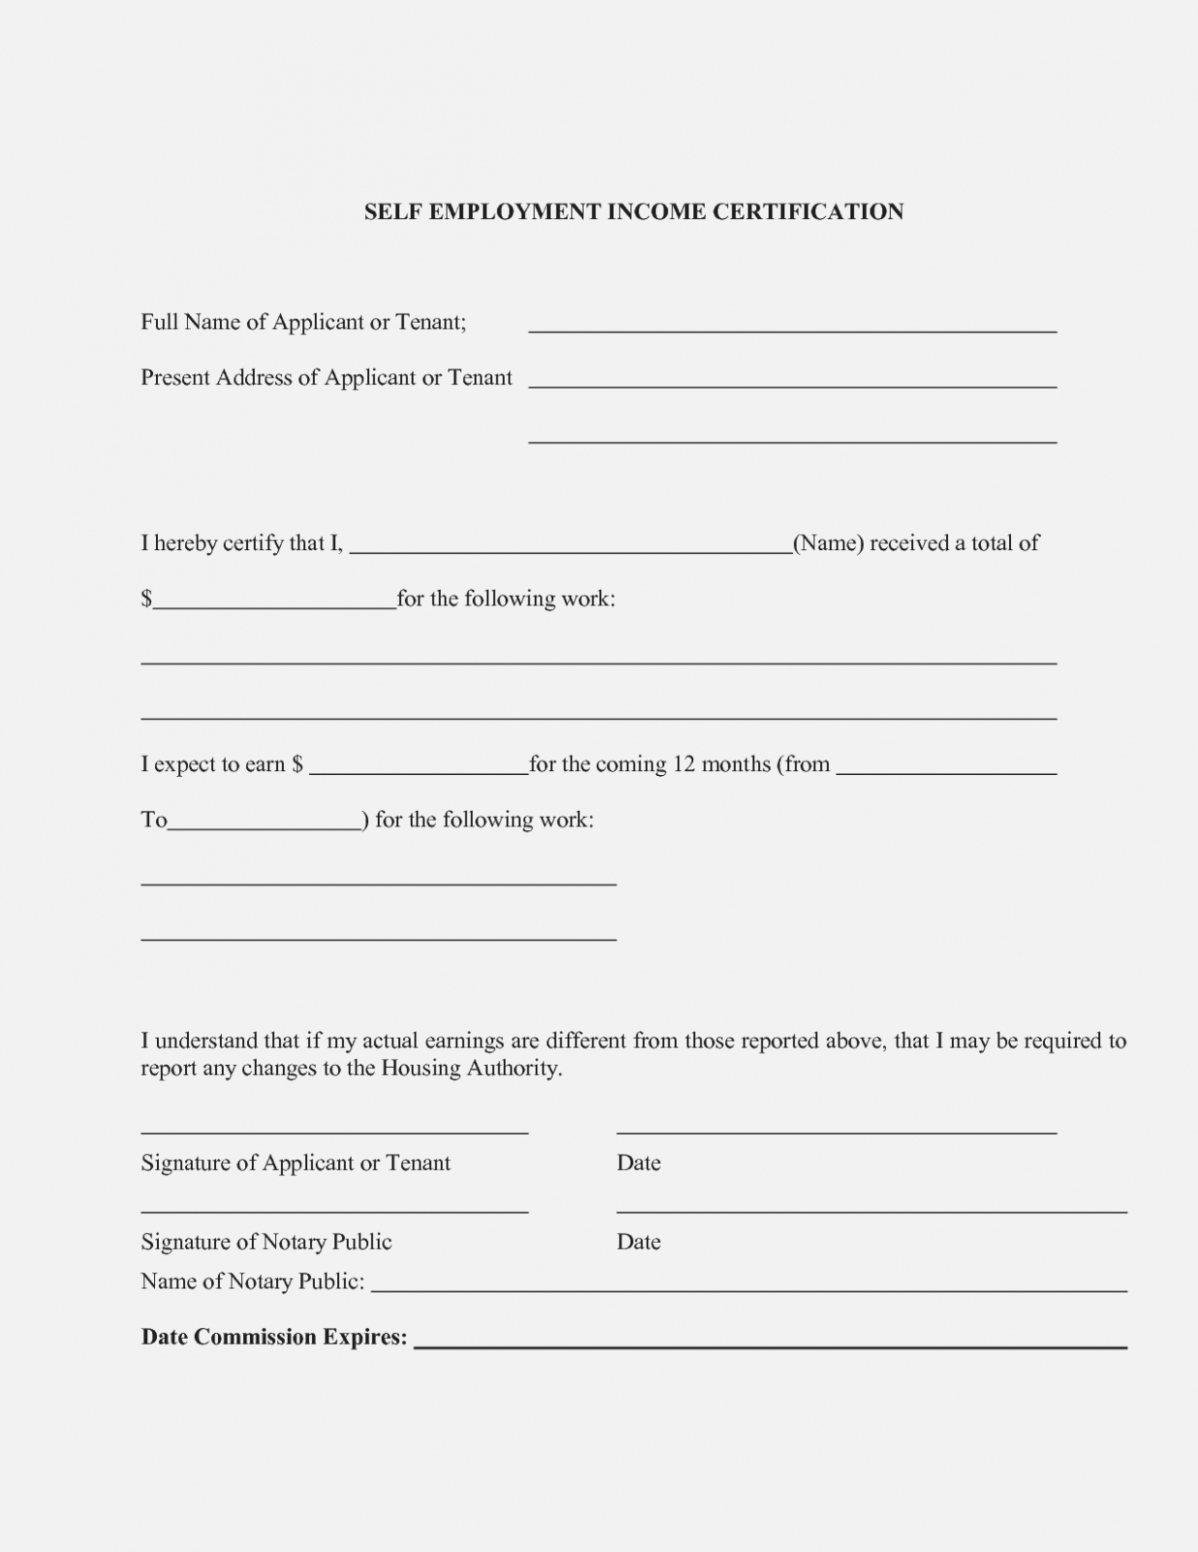 Income Verification form Template Awesome why is Self Employment